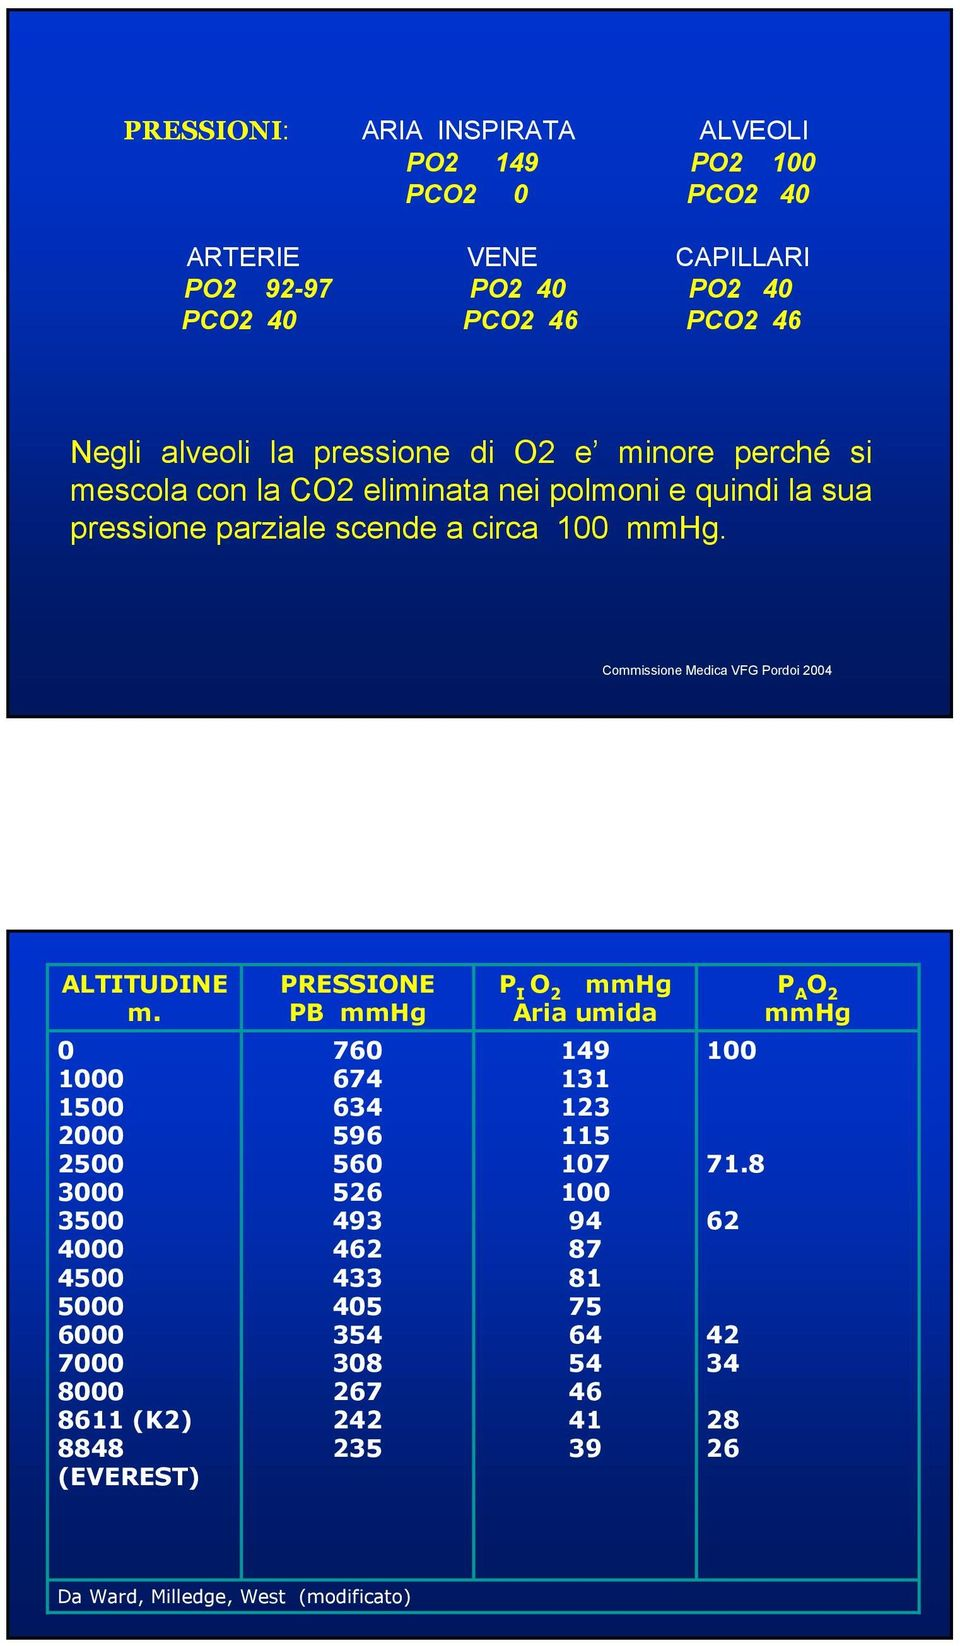 0 1000 1500 2000 2500 3000 3500 4000 4500 5000 6000 7000 8000 8611 (K2) 8848 (EVEREST) PRESSIONE PB mmhg 760 674 634 596 560 526 493 462 433 405 354 308